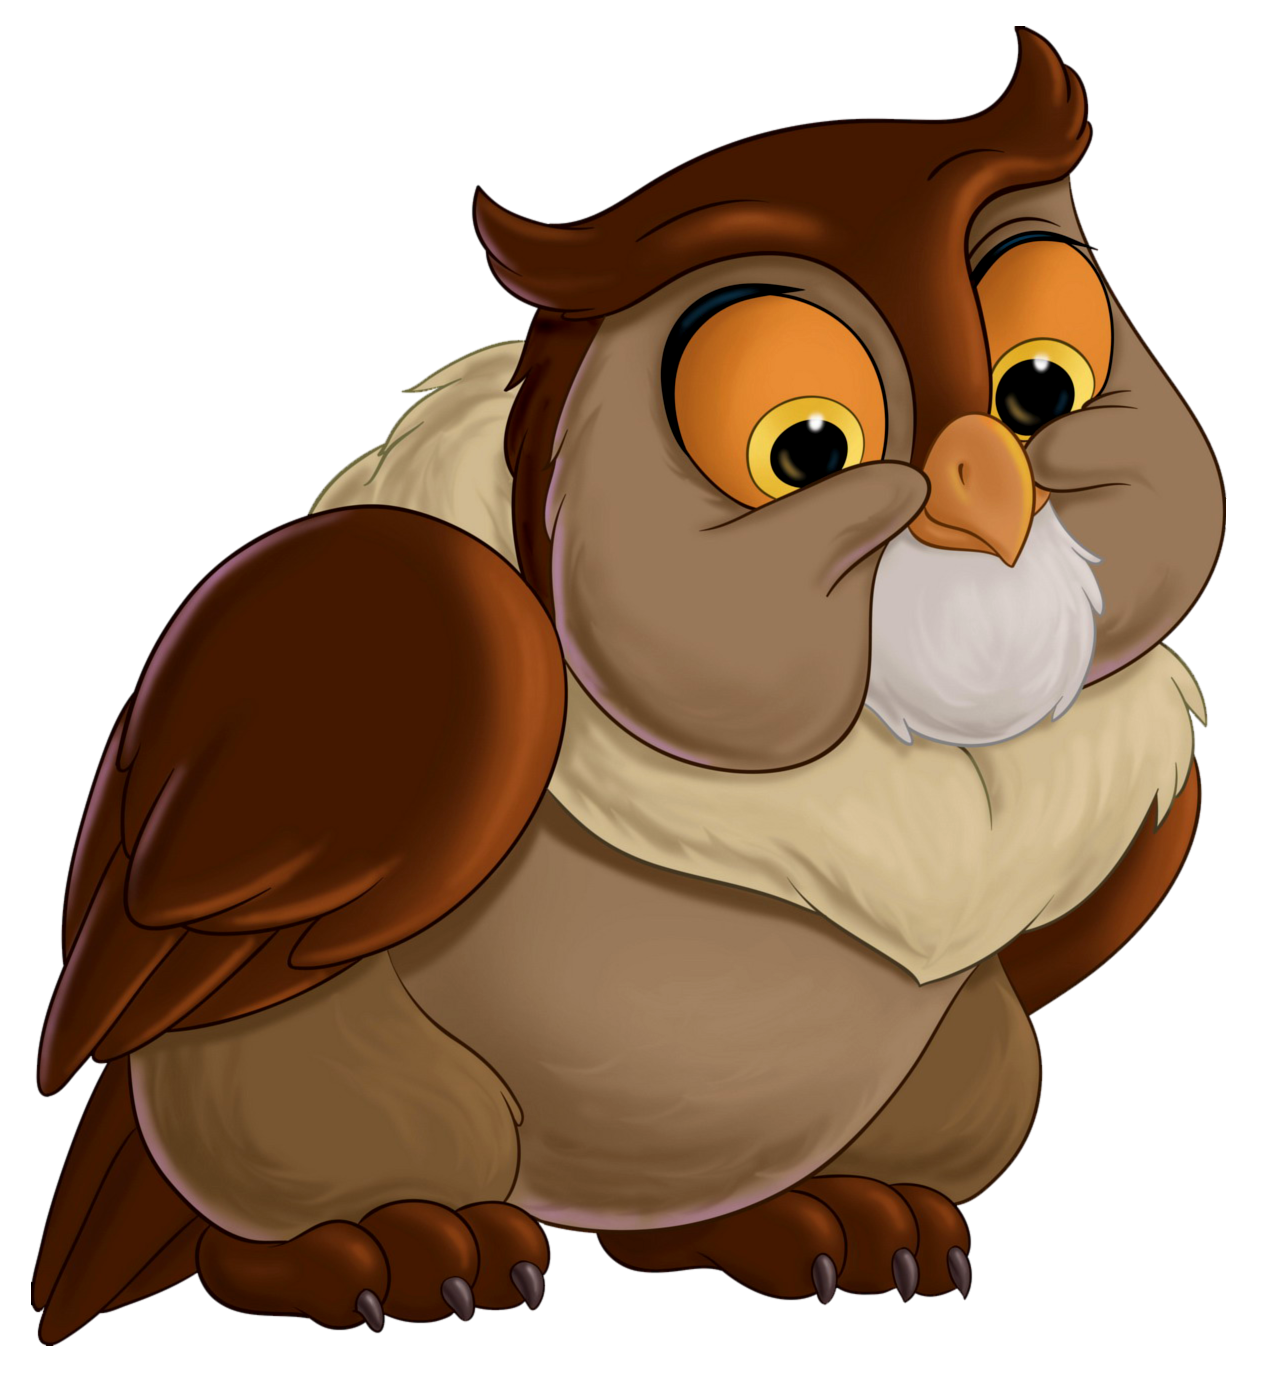 Friend clipart animated. Bambi owl transparent png